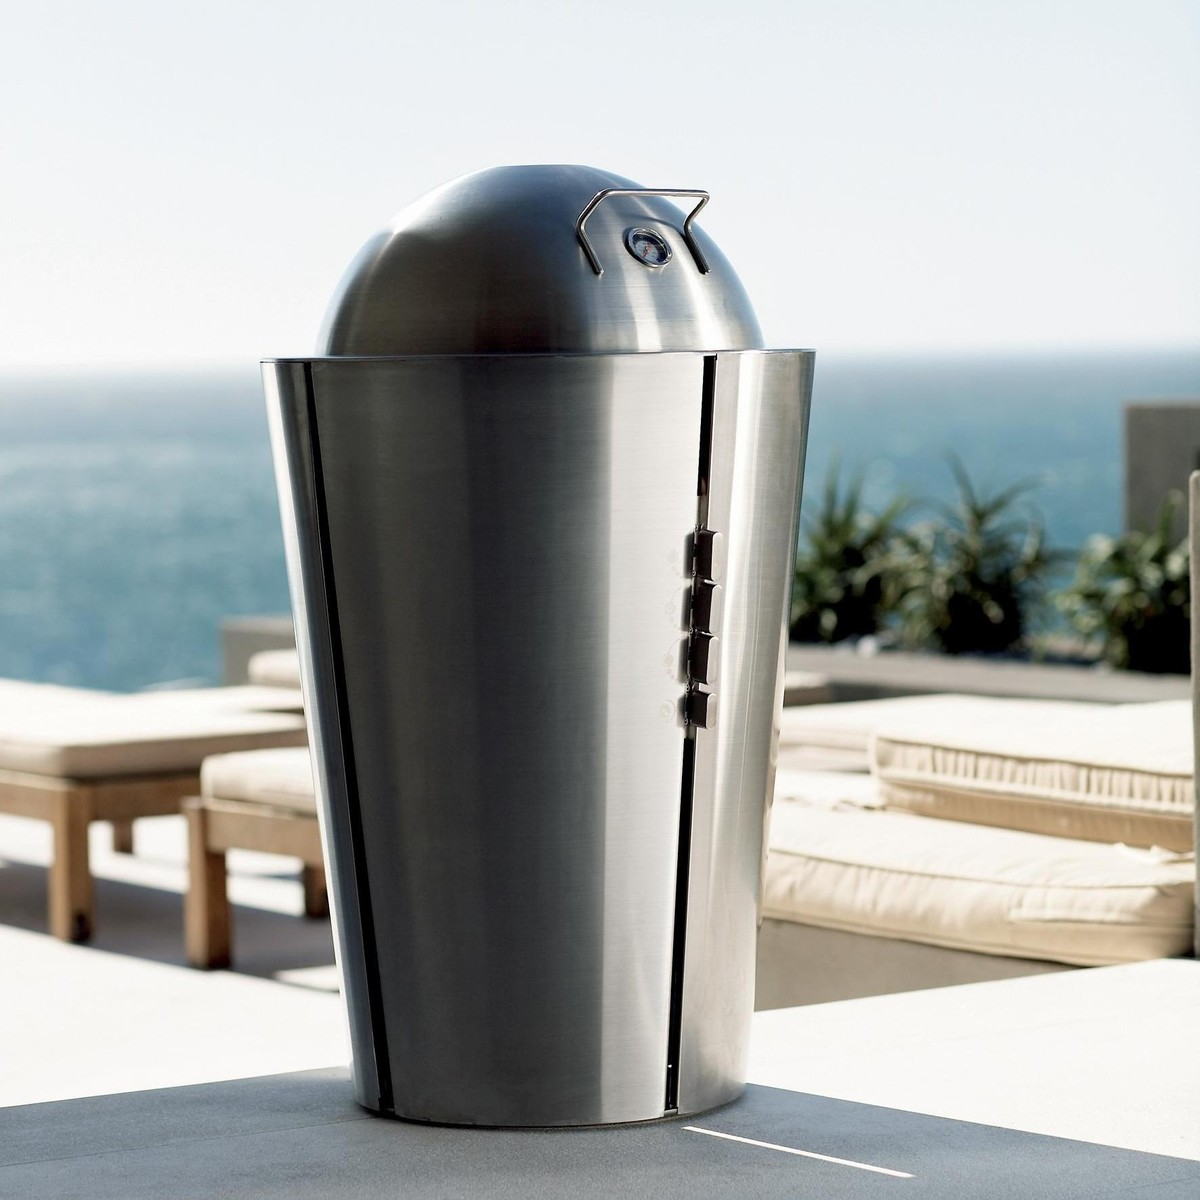 Eva Solo - Gas grill Stainless Steel 3